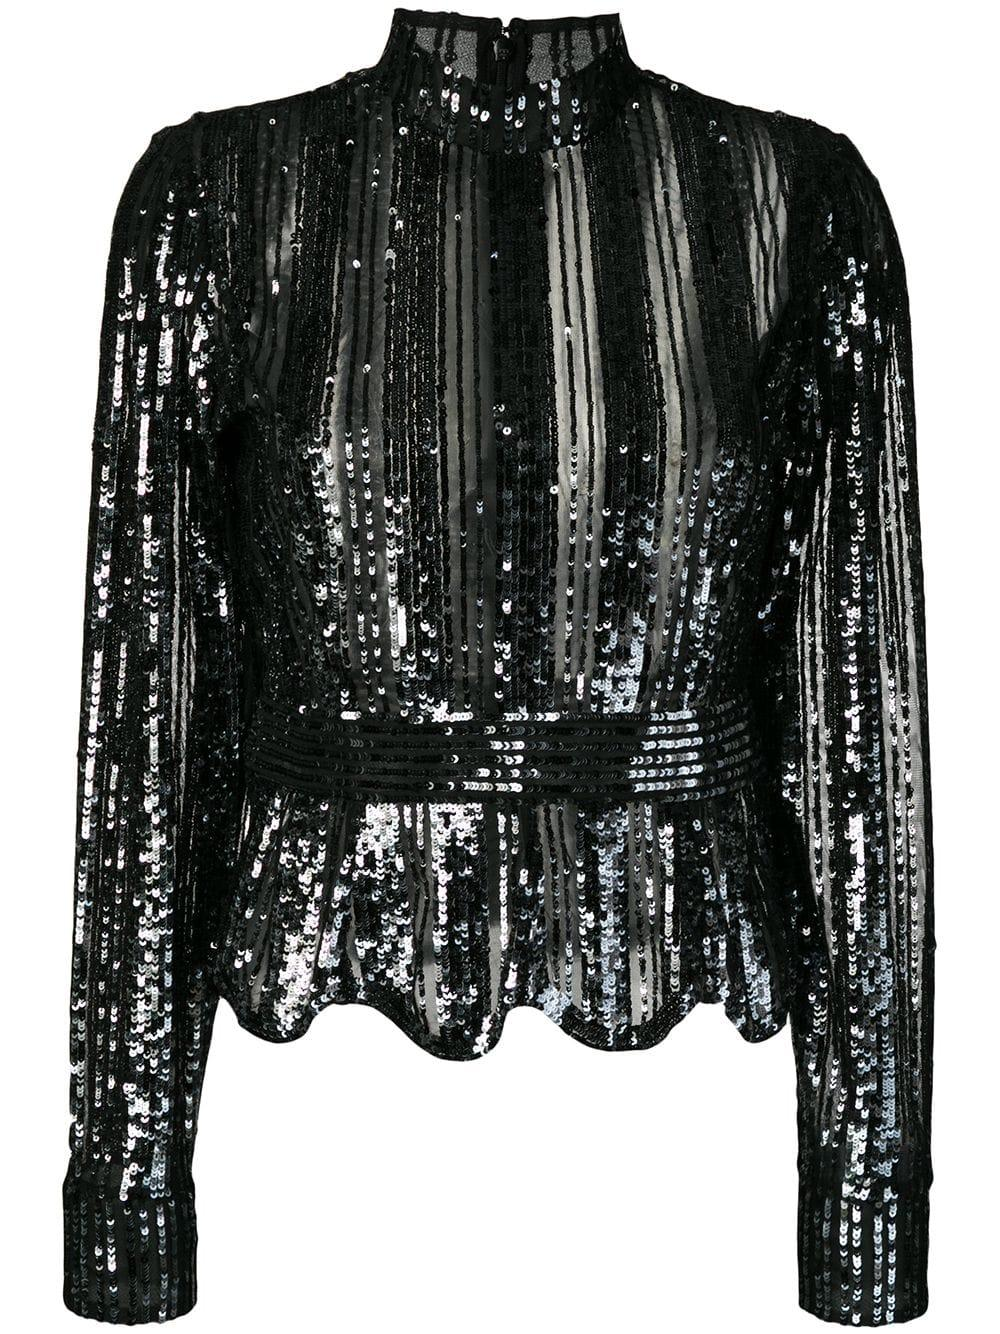 Long Sleeve Mock Neck Sequin Top Item # TF93717SQ